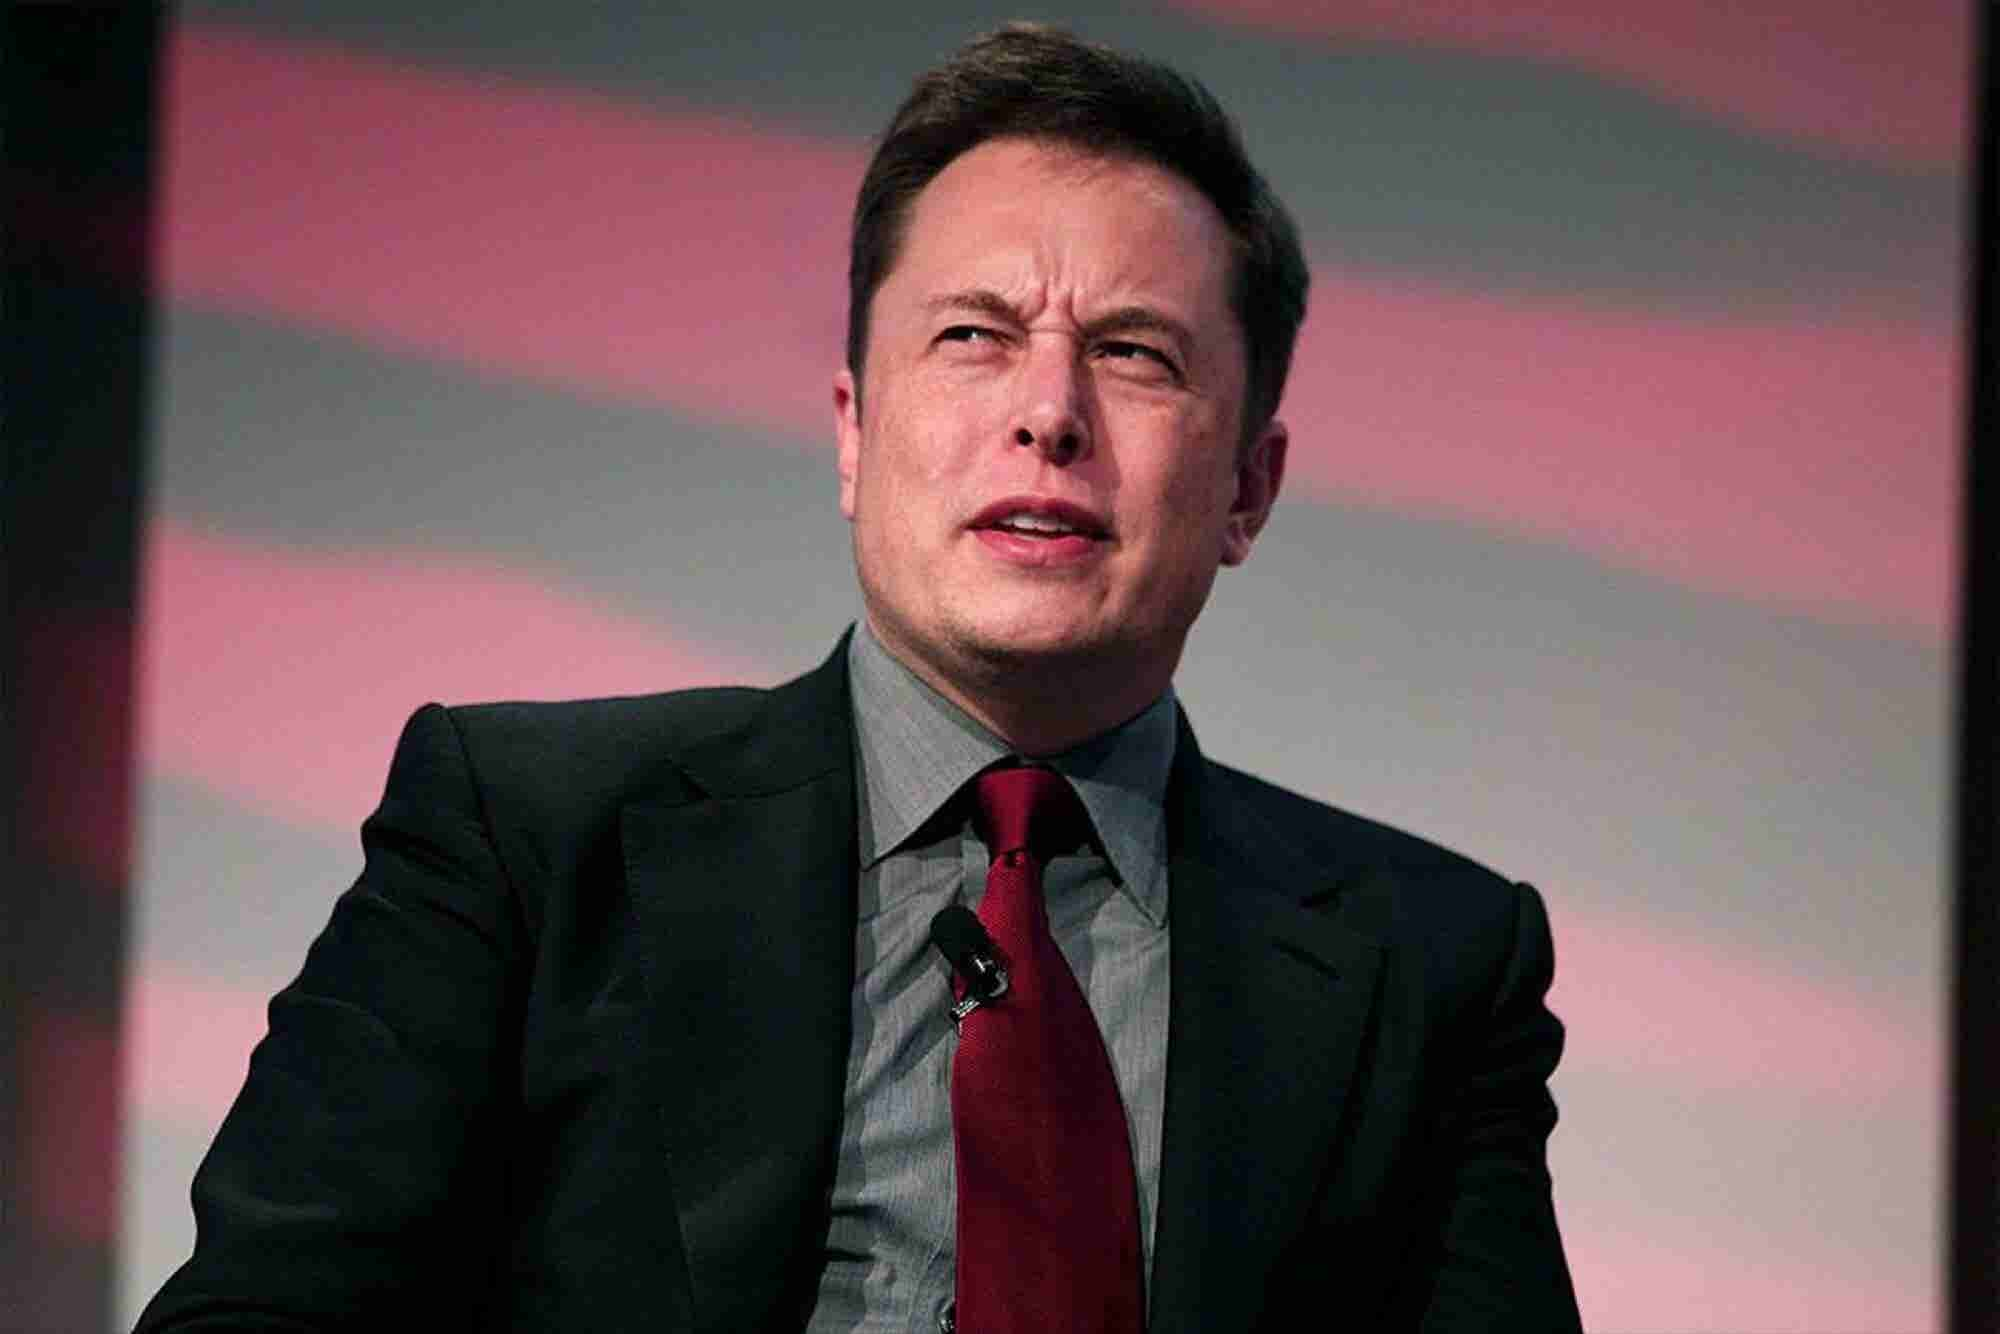 Elon Musk Puts Potential SpaceX Hires Through a Grueling Interviewing Process One Former Employee Calls a 'Gauntlet'